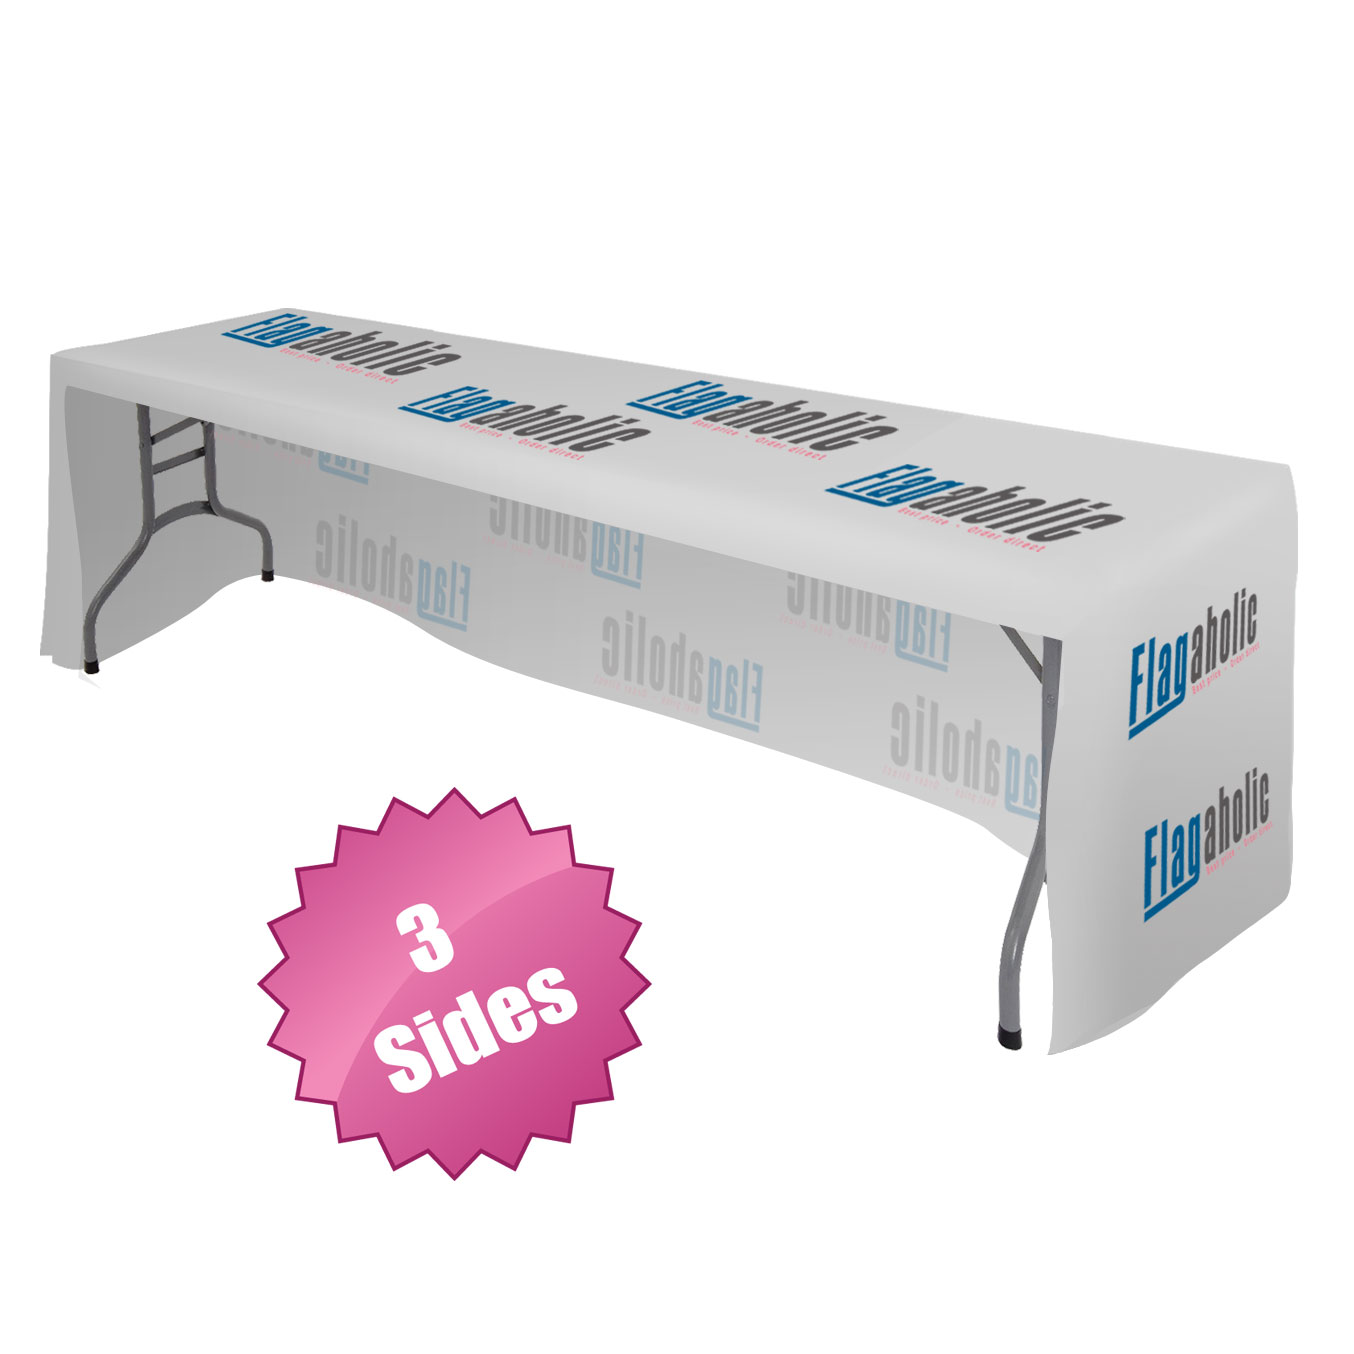 High definition fitted table throws fitted table cover for Table th row